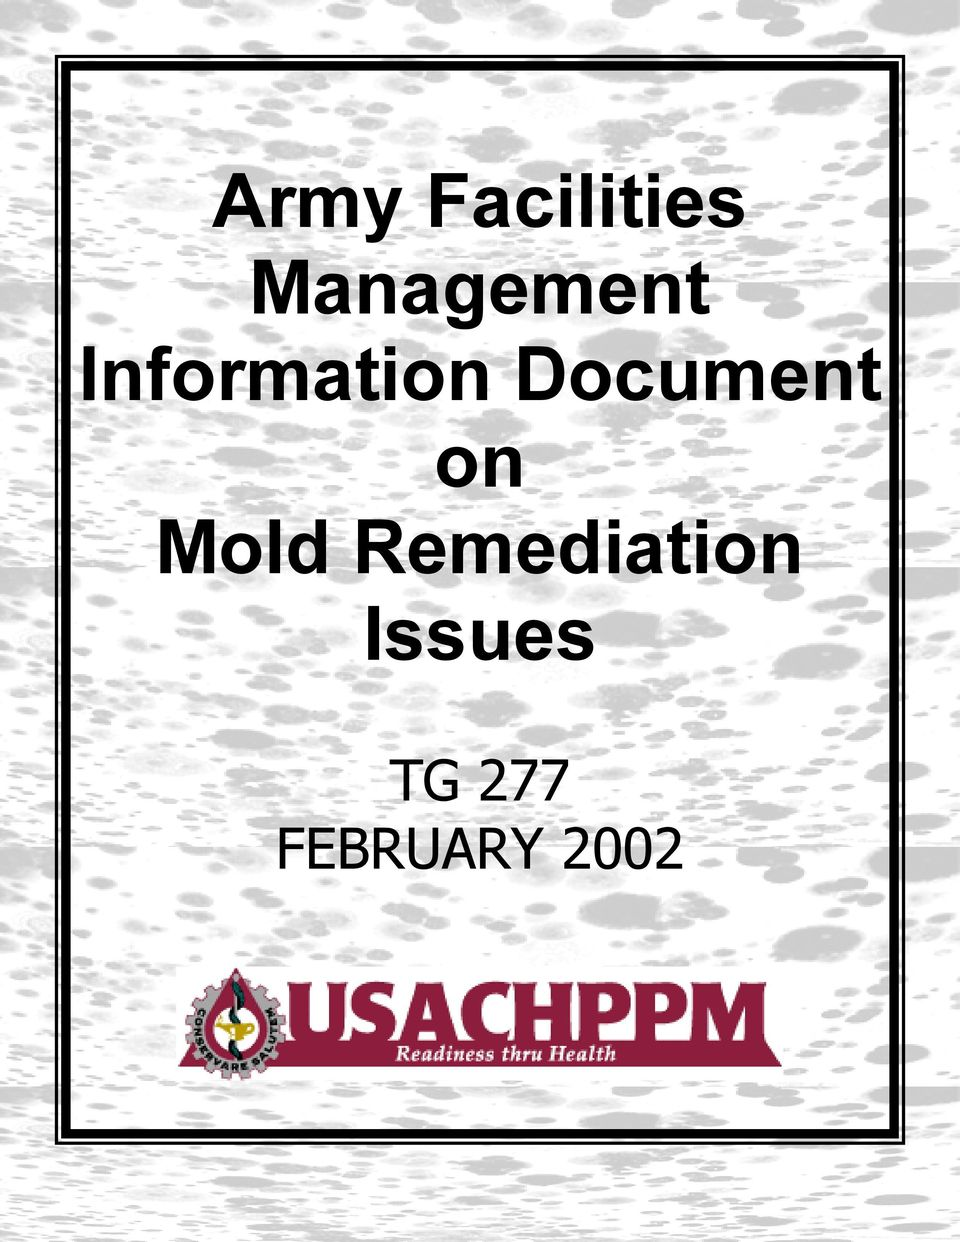 Document on Mold